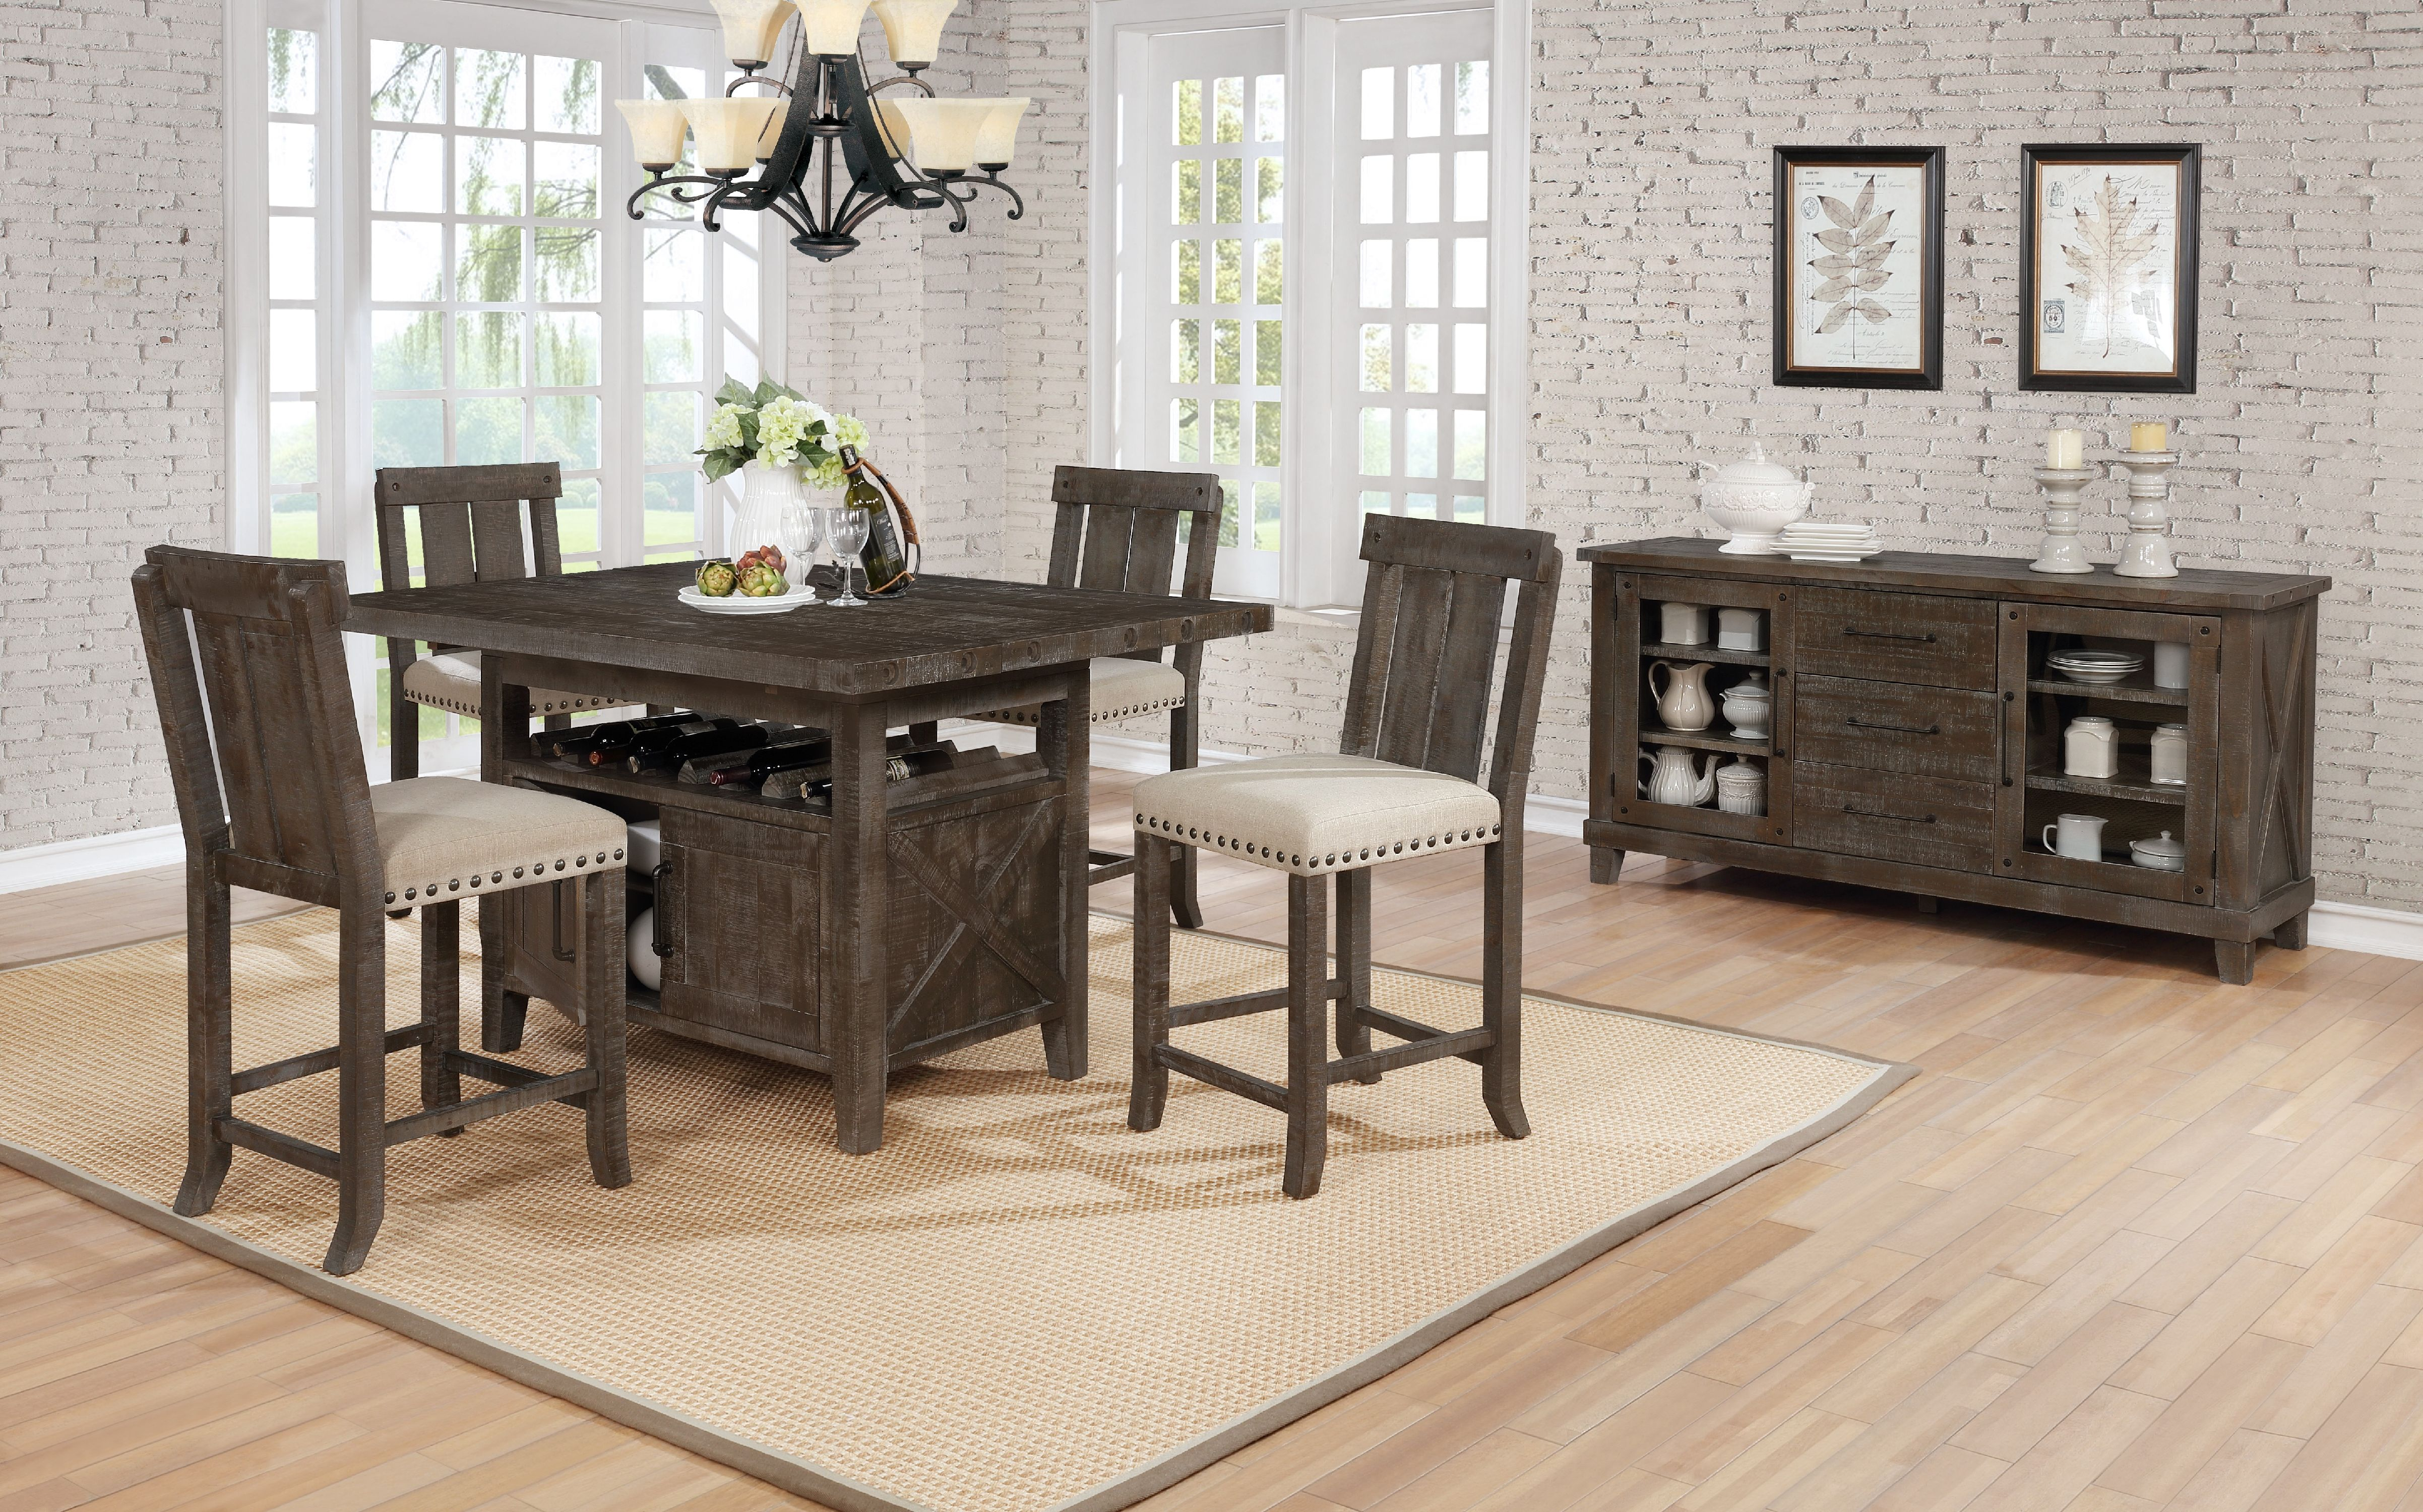 5pc Country Style Counter Height Set Wood C H Chairs And Storage Under Table Rustic Finish Walmart Com Walmart Com